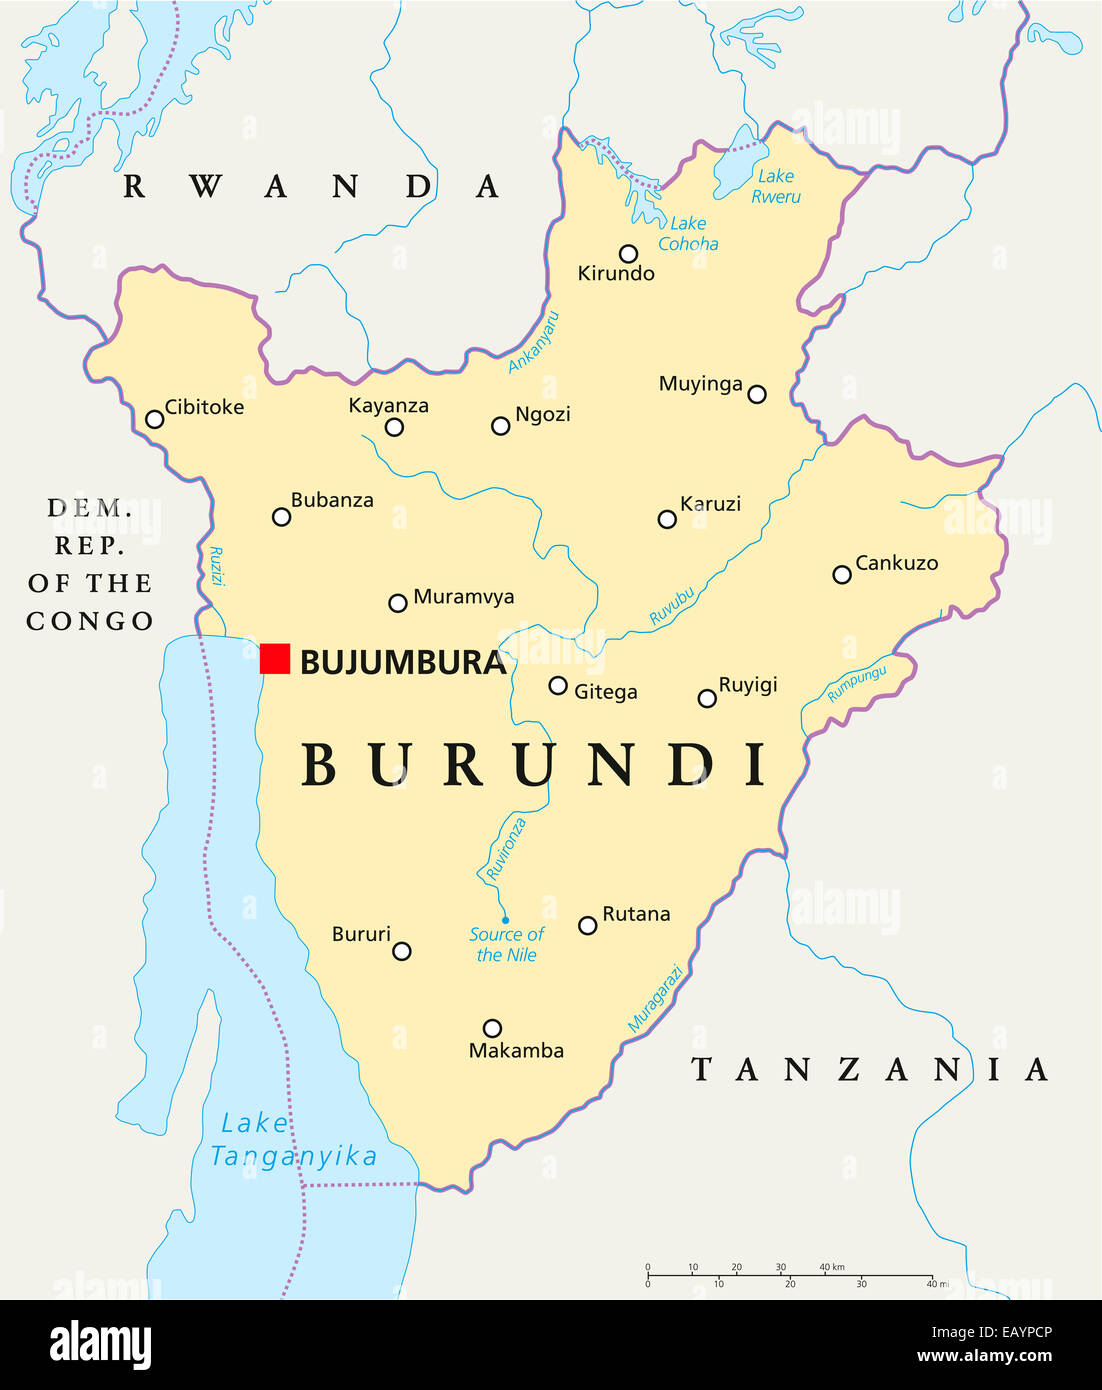 Burundi Political Map With Capital Bujumbura National Borders - bujumbura map